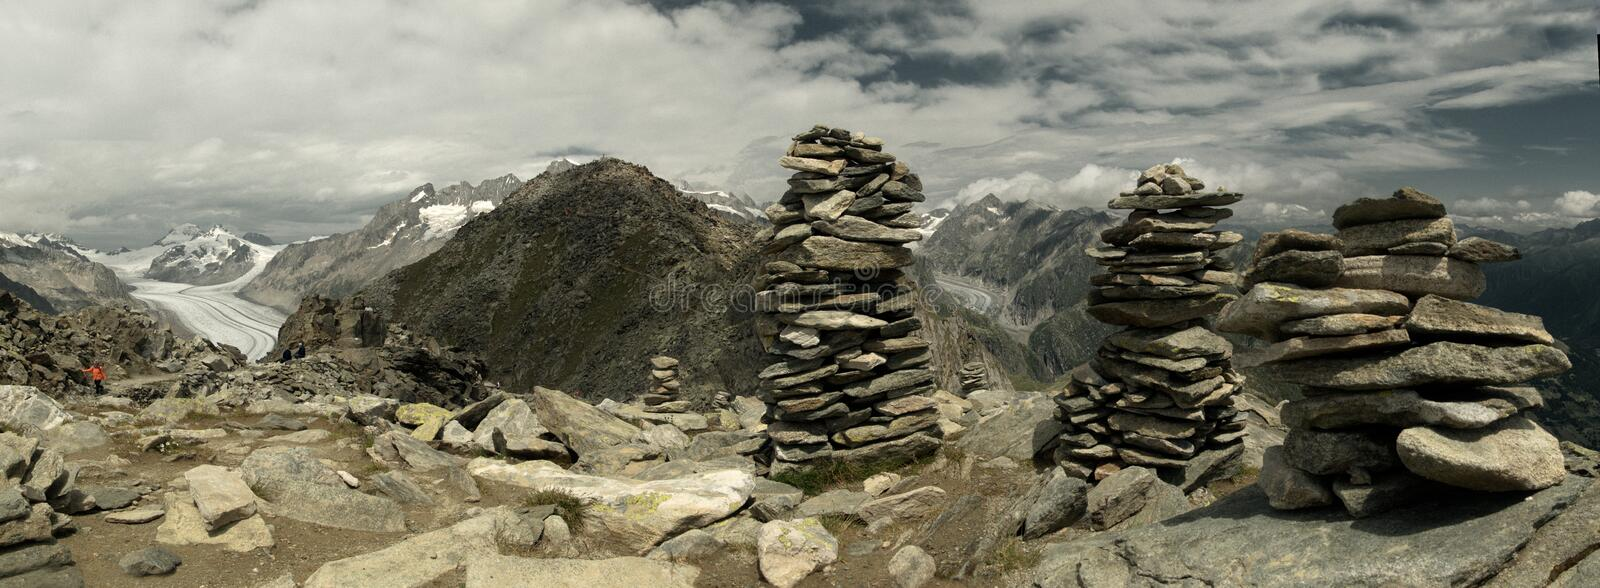 Rocks stacked on the peaks; terrain next to Eggishorn station. Rocks stacked near the cable-car station at Eggishorn, Valais in the Swiss Alps royalty free stock photos